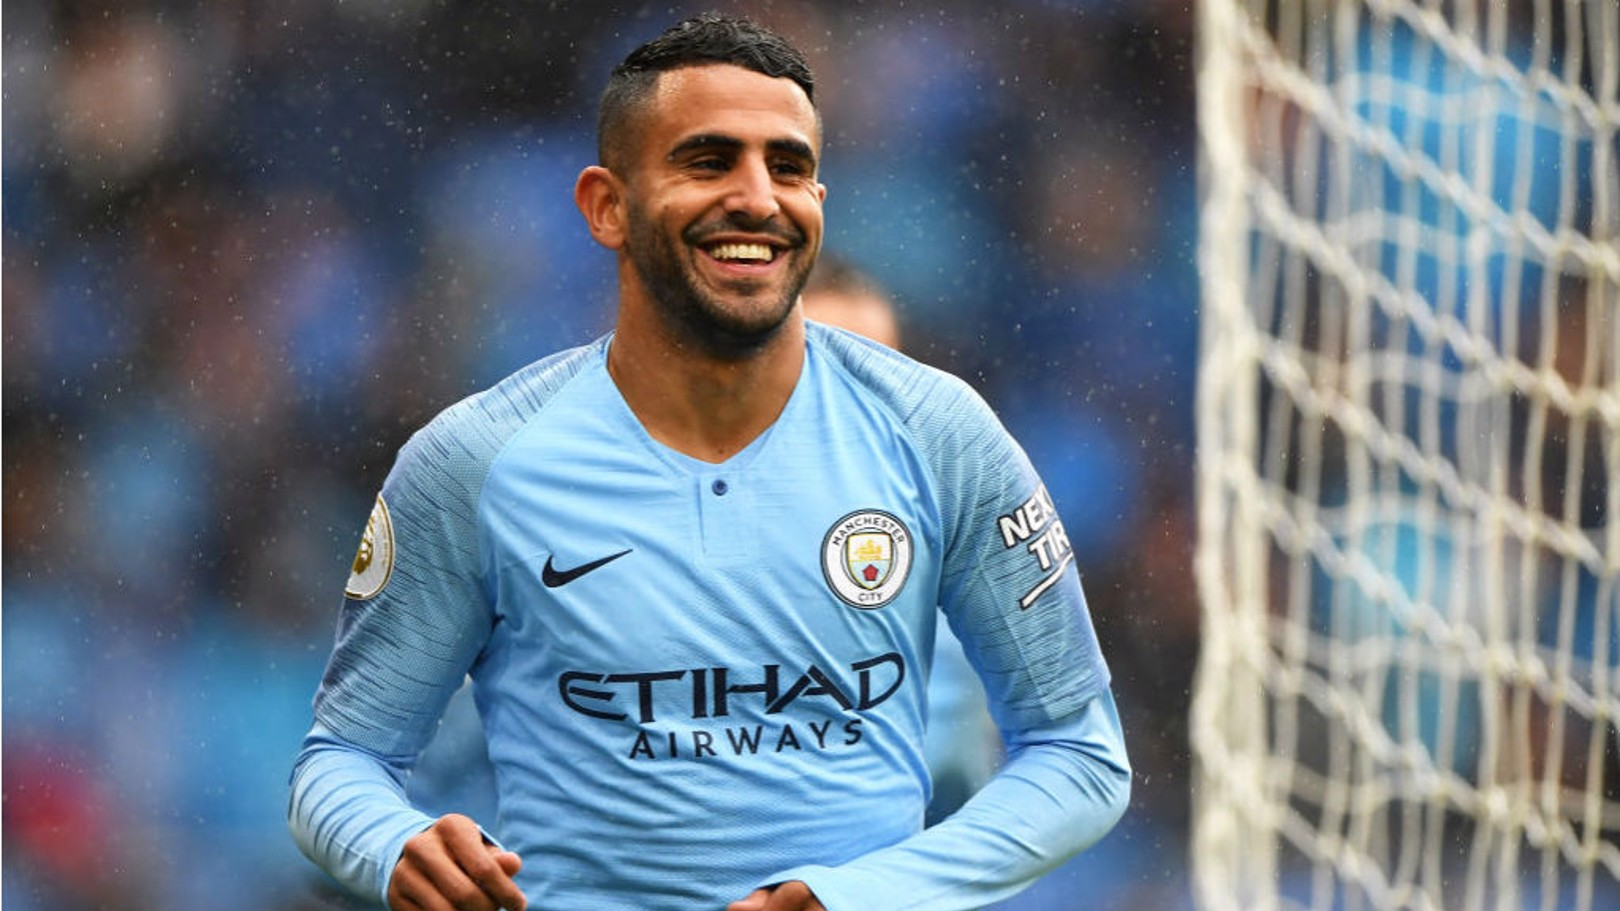 Mahrez Can Be City's Flexible Friend